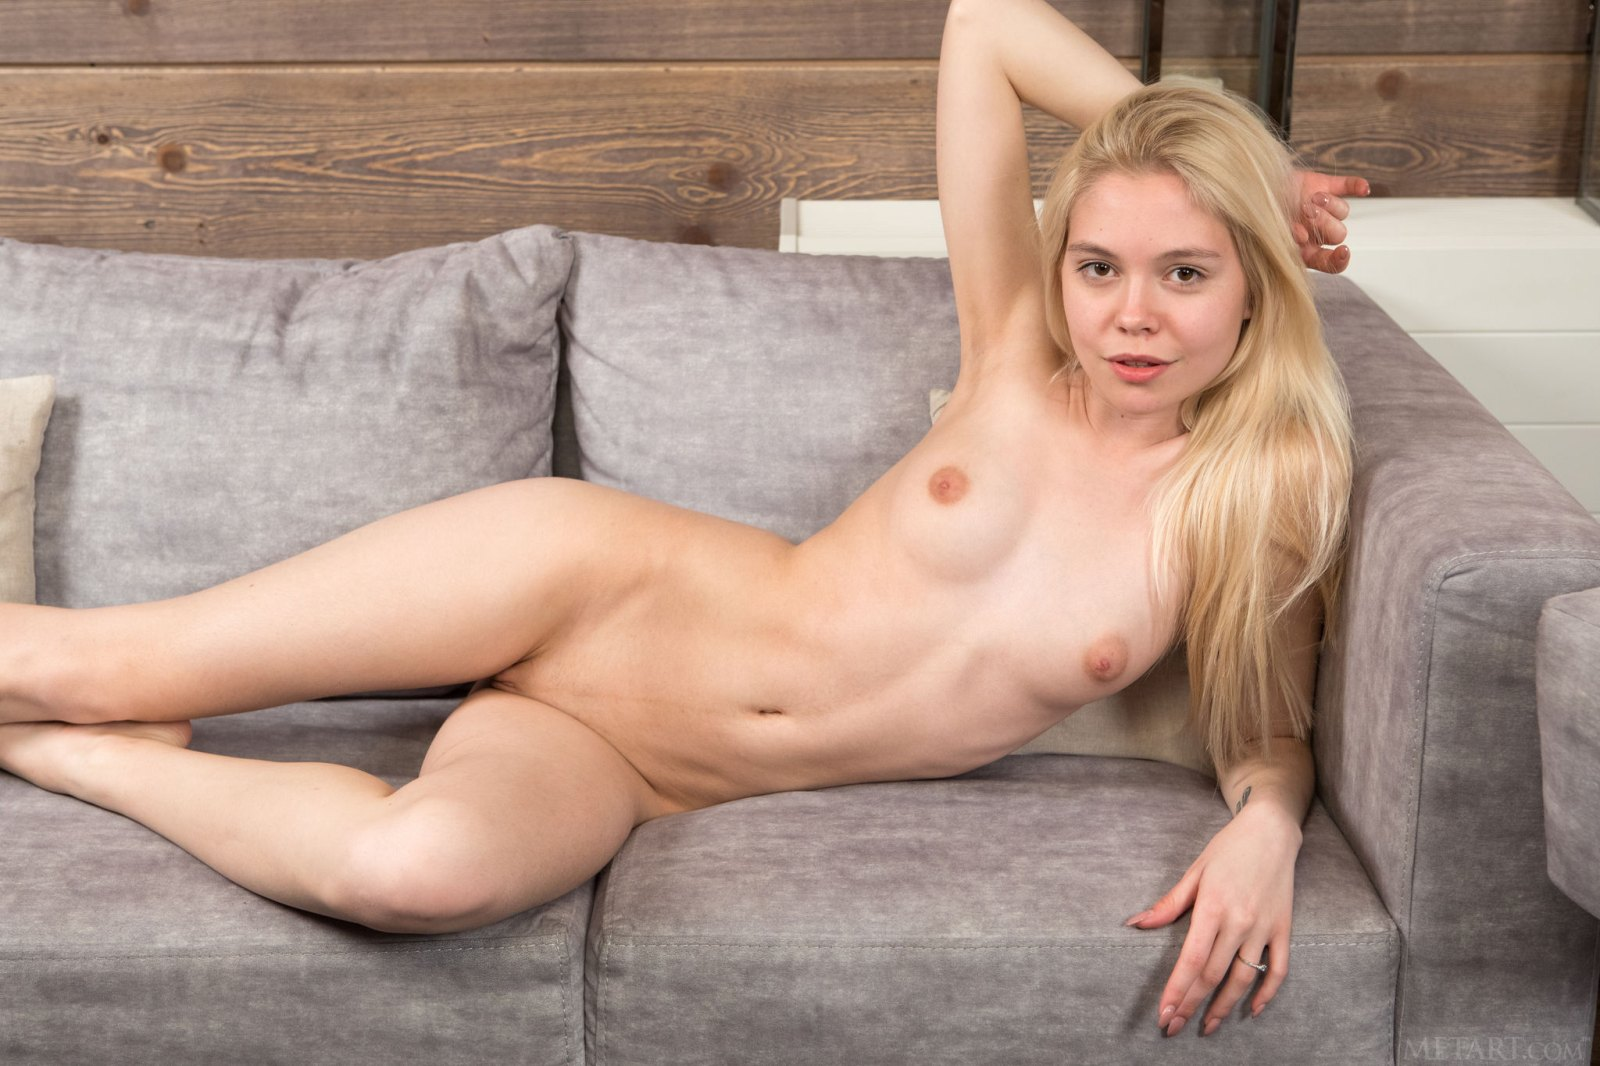 Young blonde nude with jersey